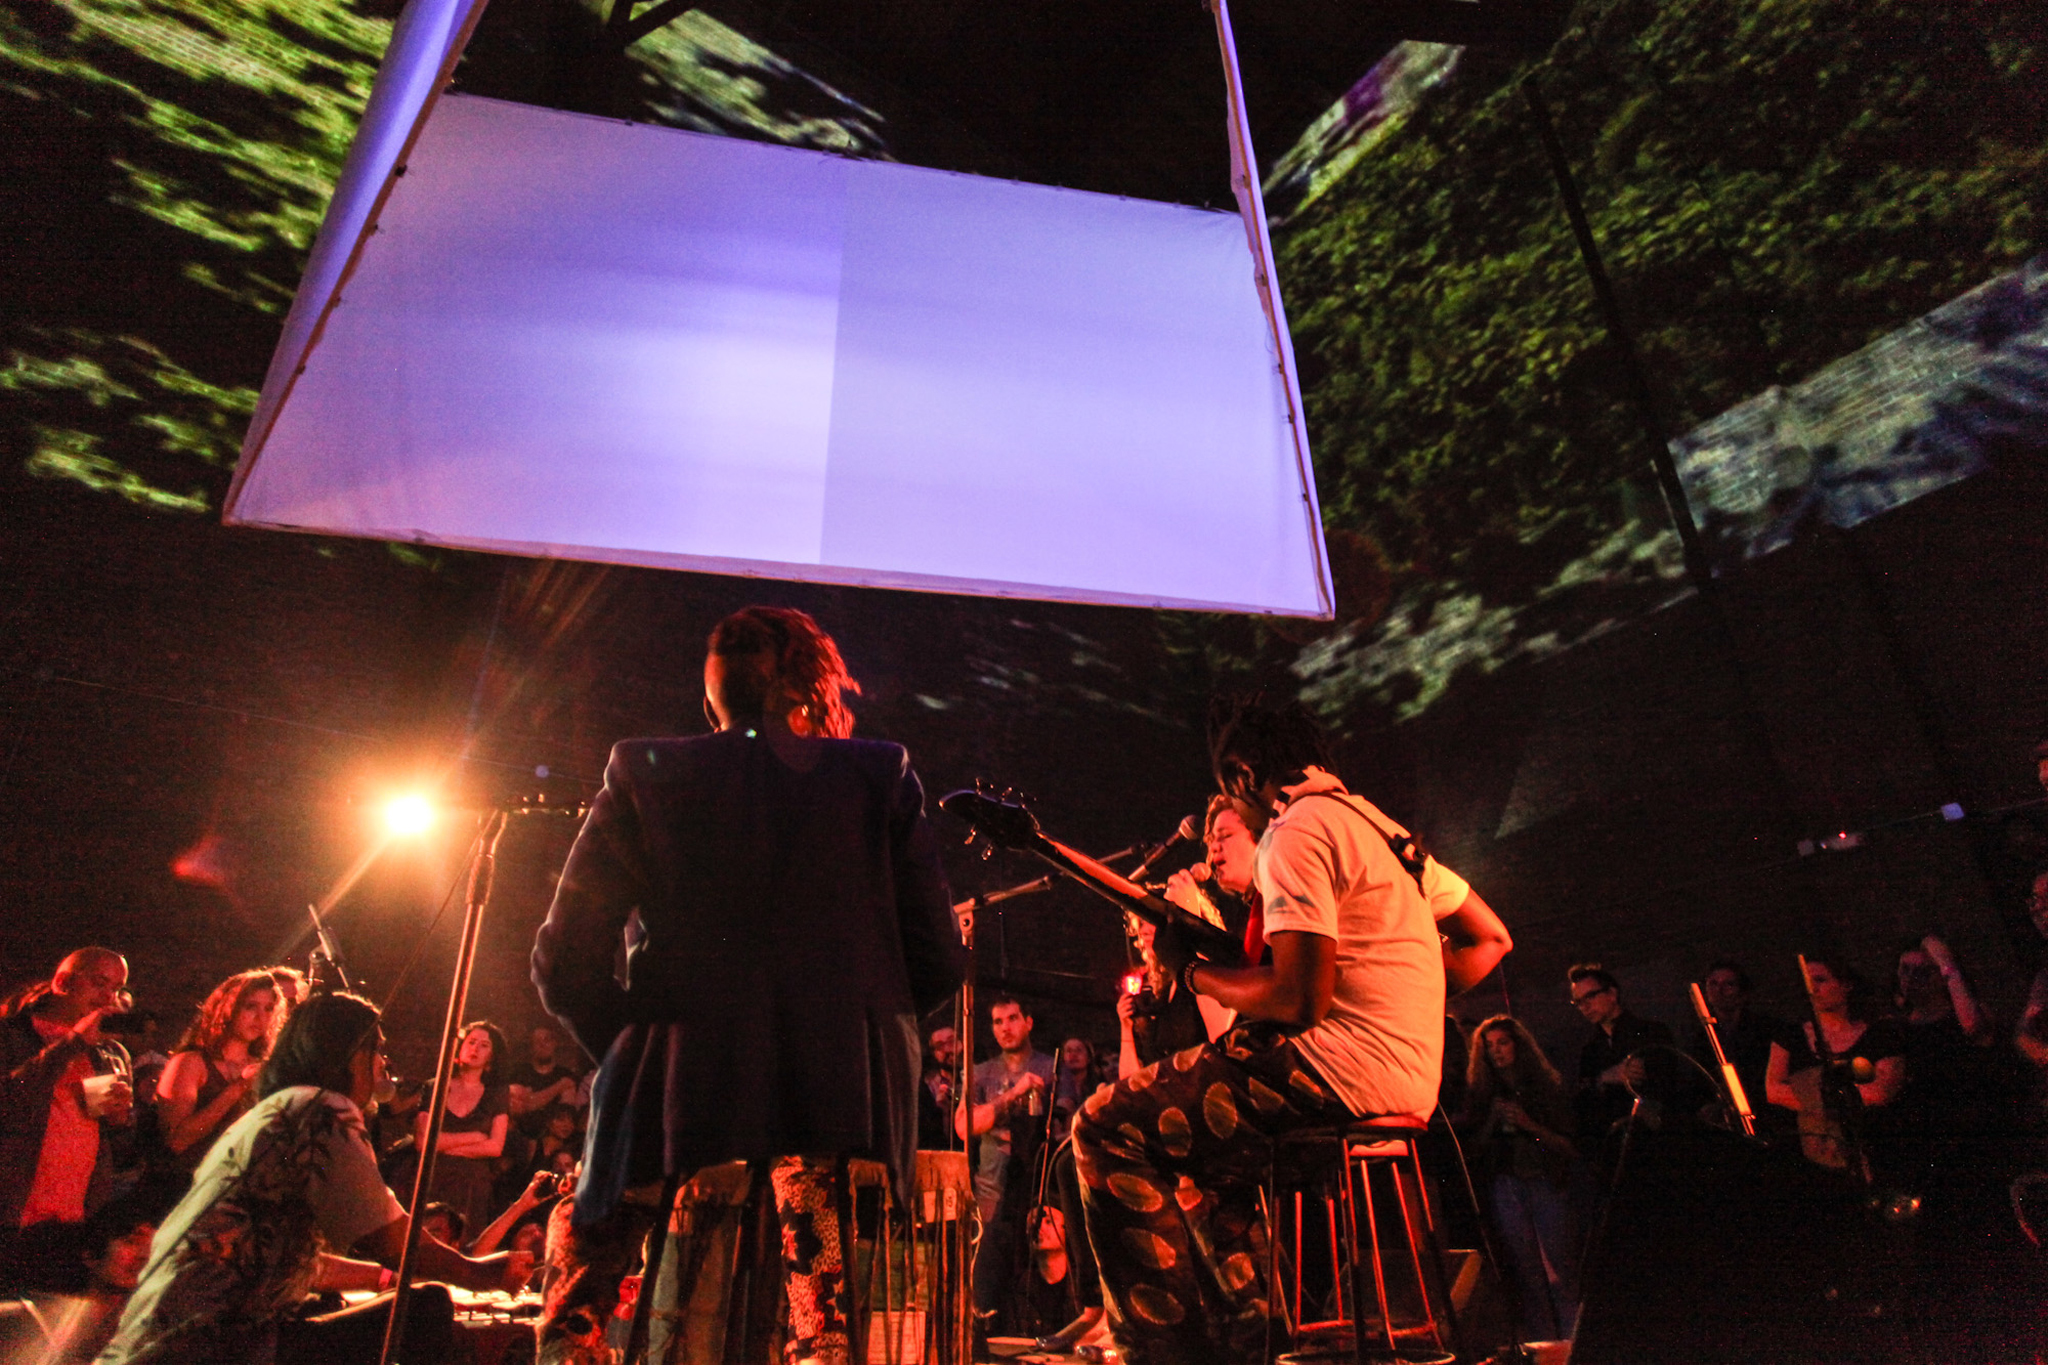 Nuit Blanche New York opens the Autumn Bowl in Greenpoint